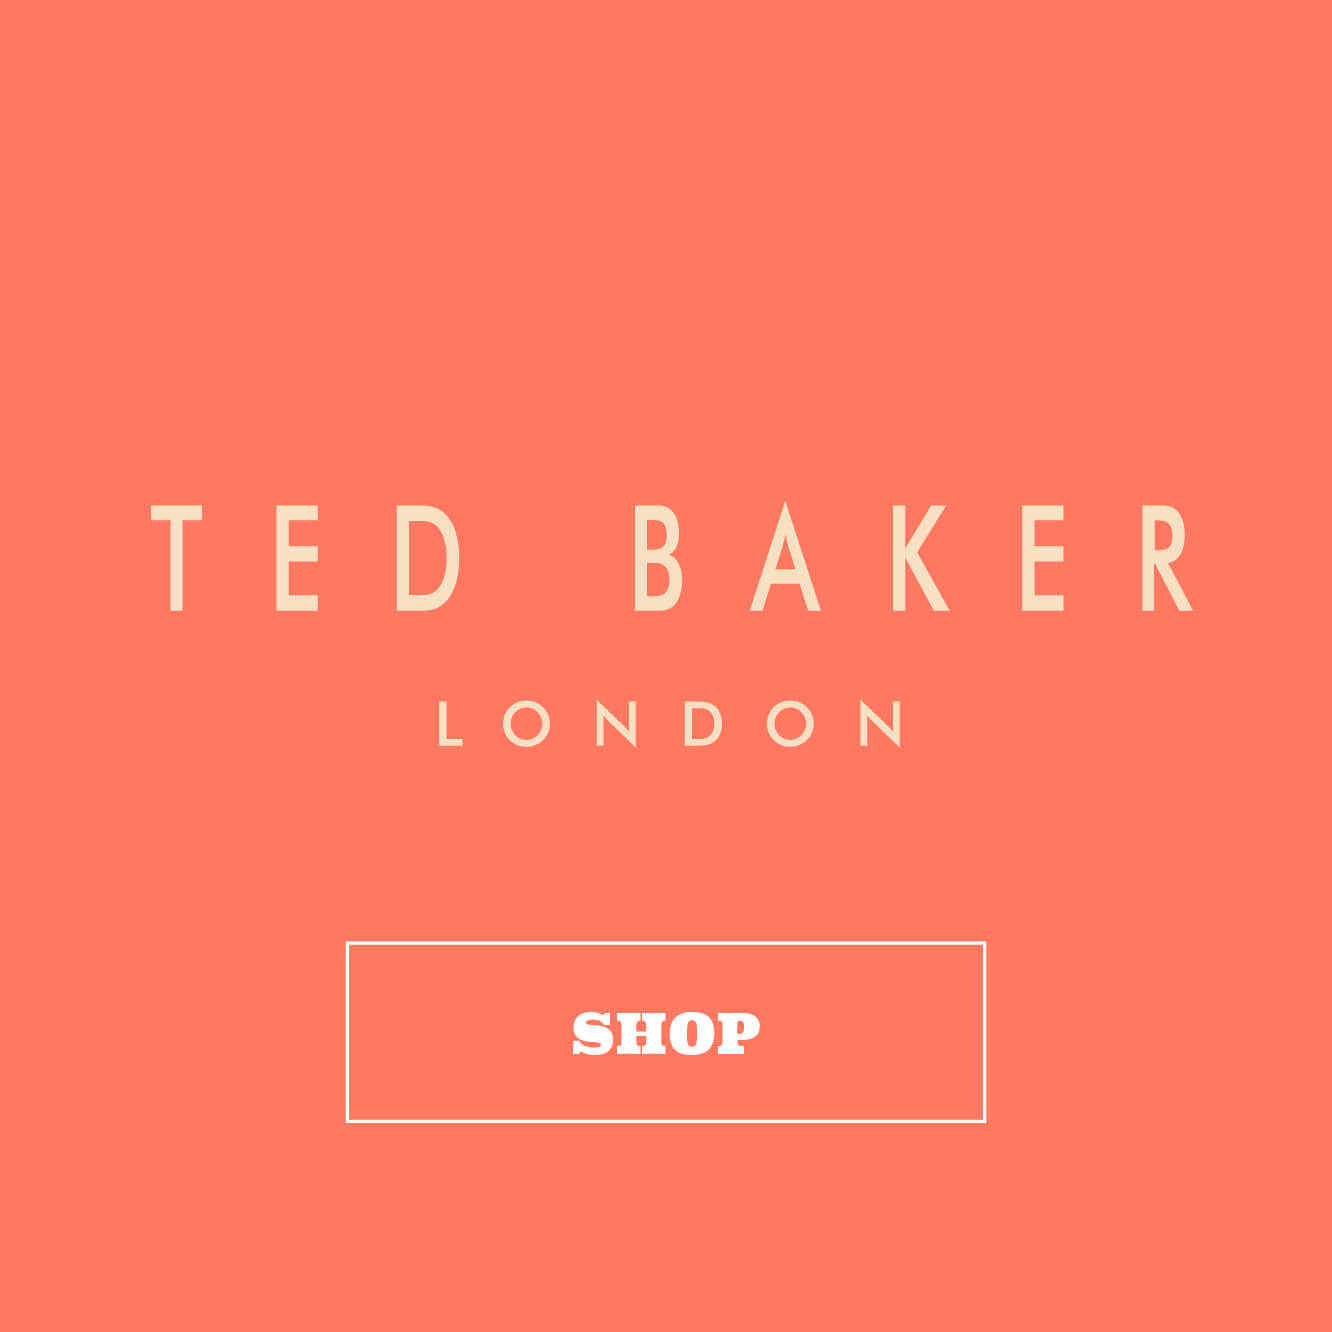 Shop Ted Baker London by Wild & Wolf